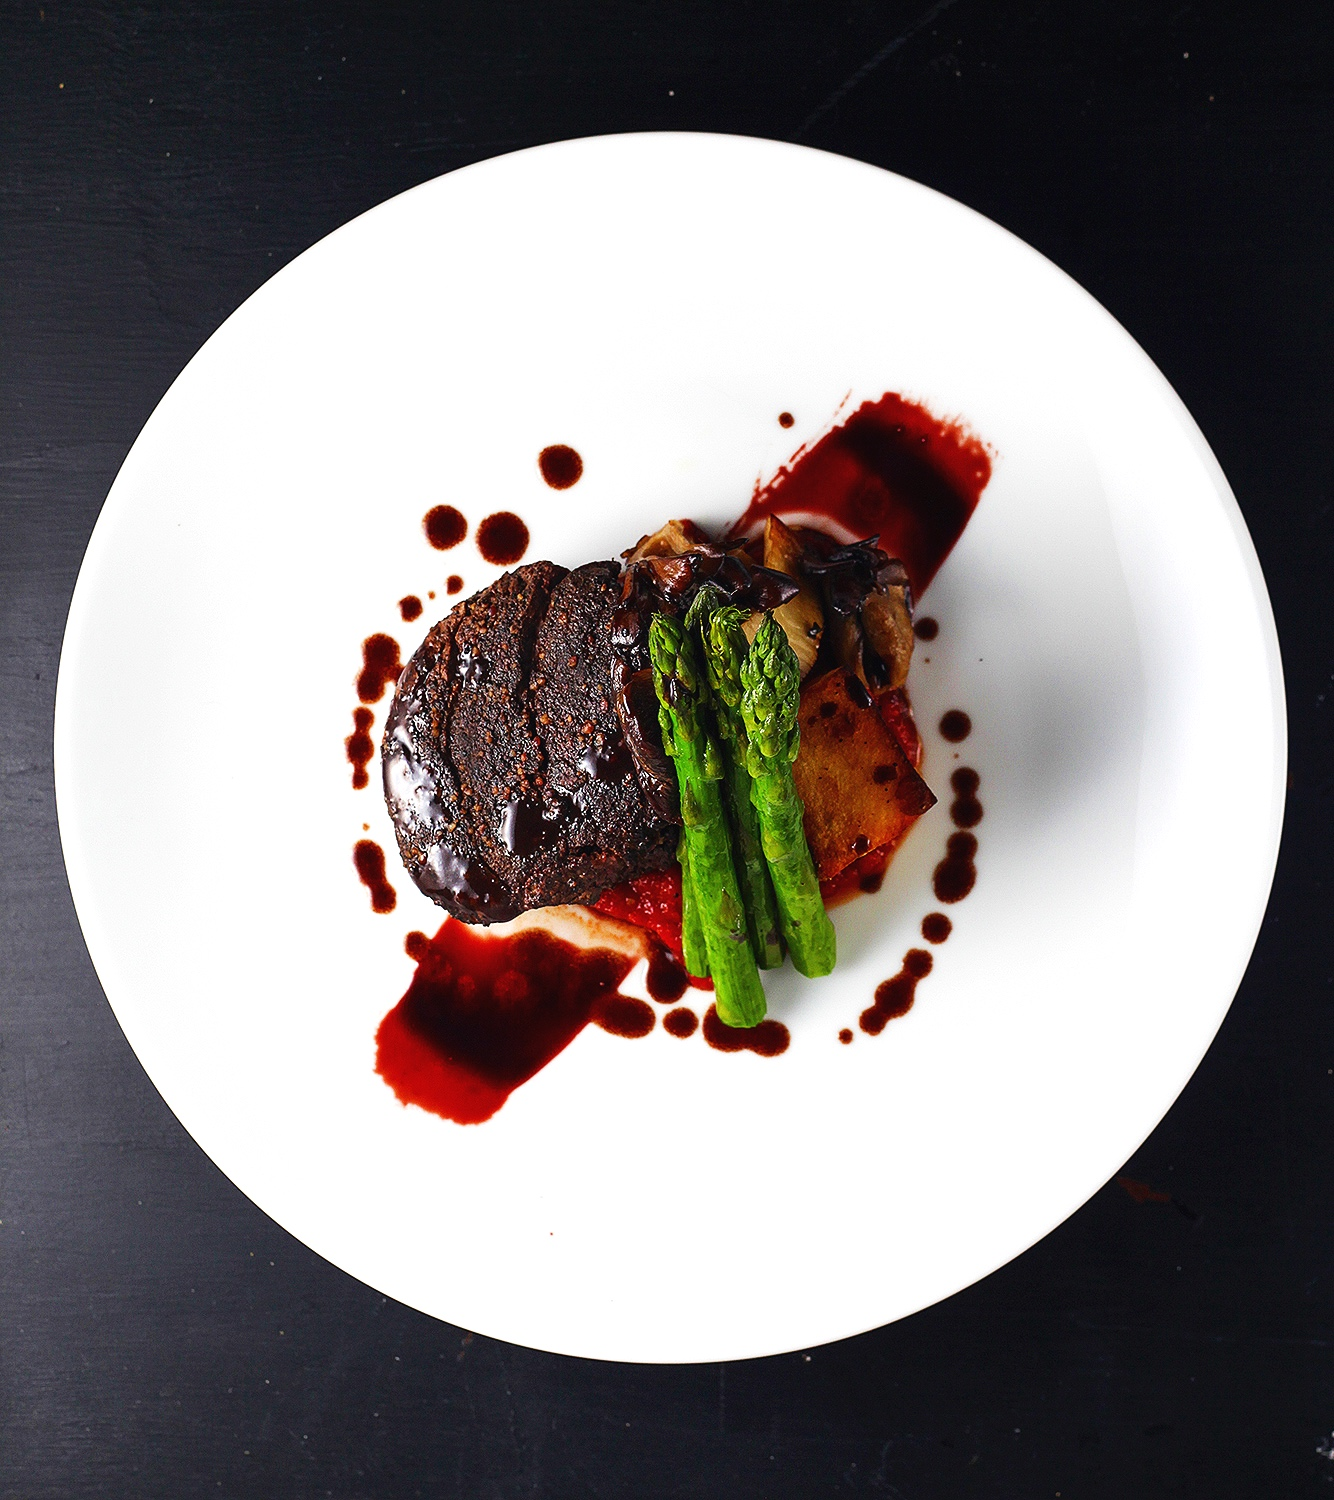 Beef tenderloin over polenta with red wine reduction and topped with asparagus